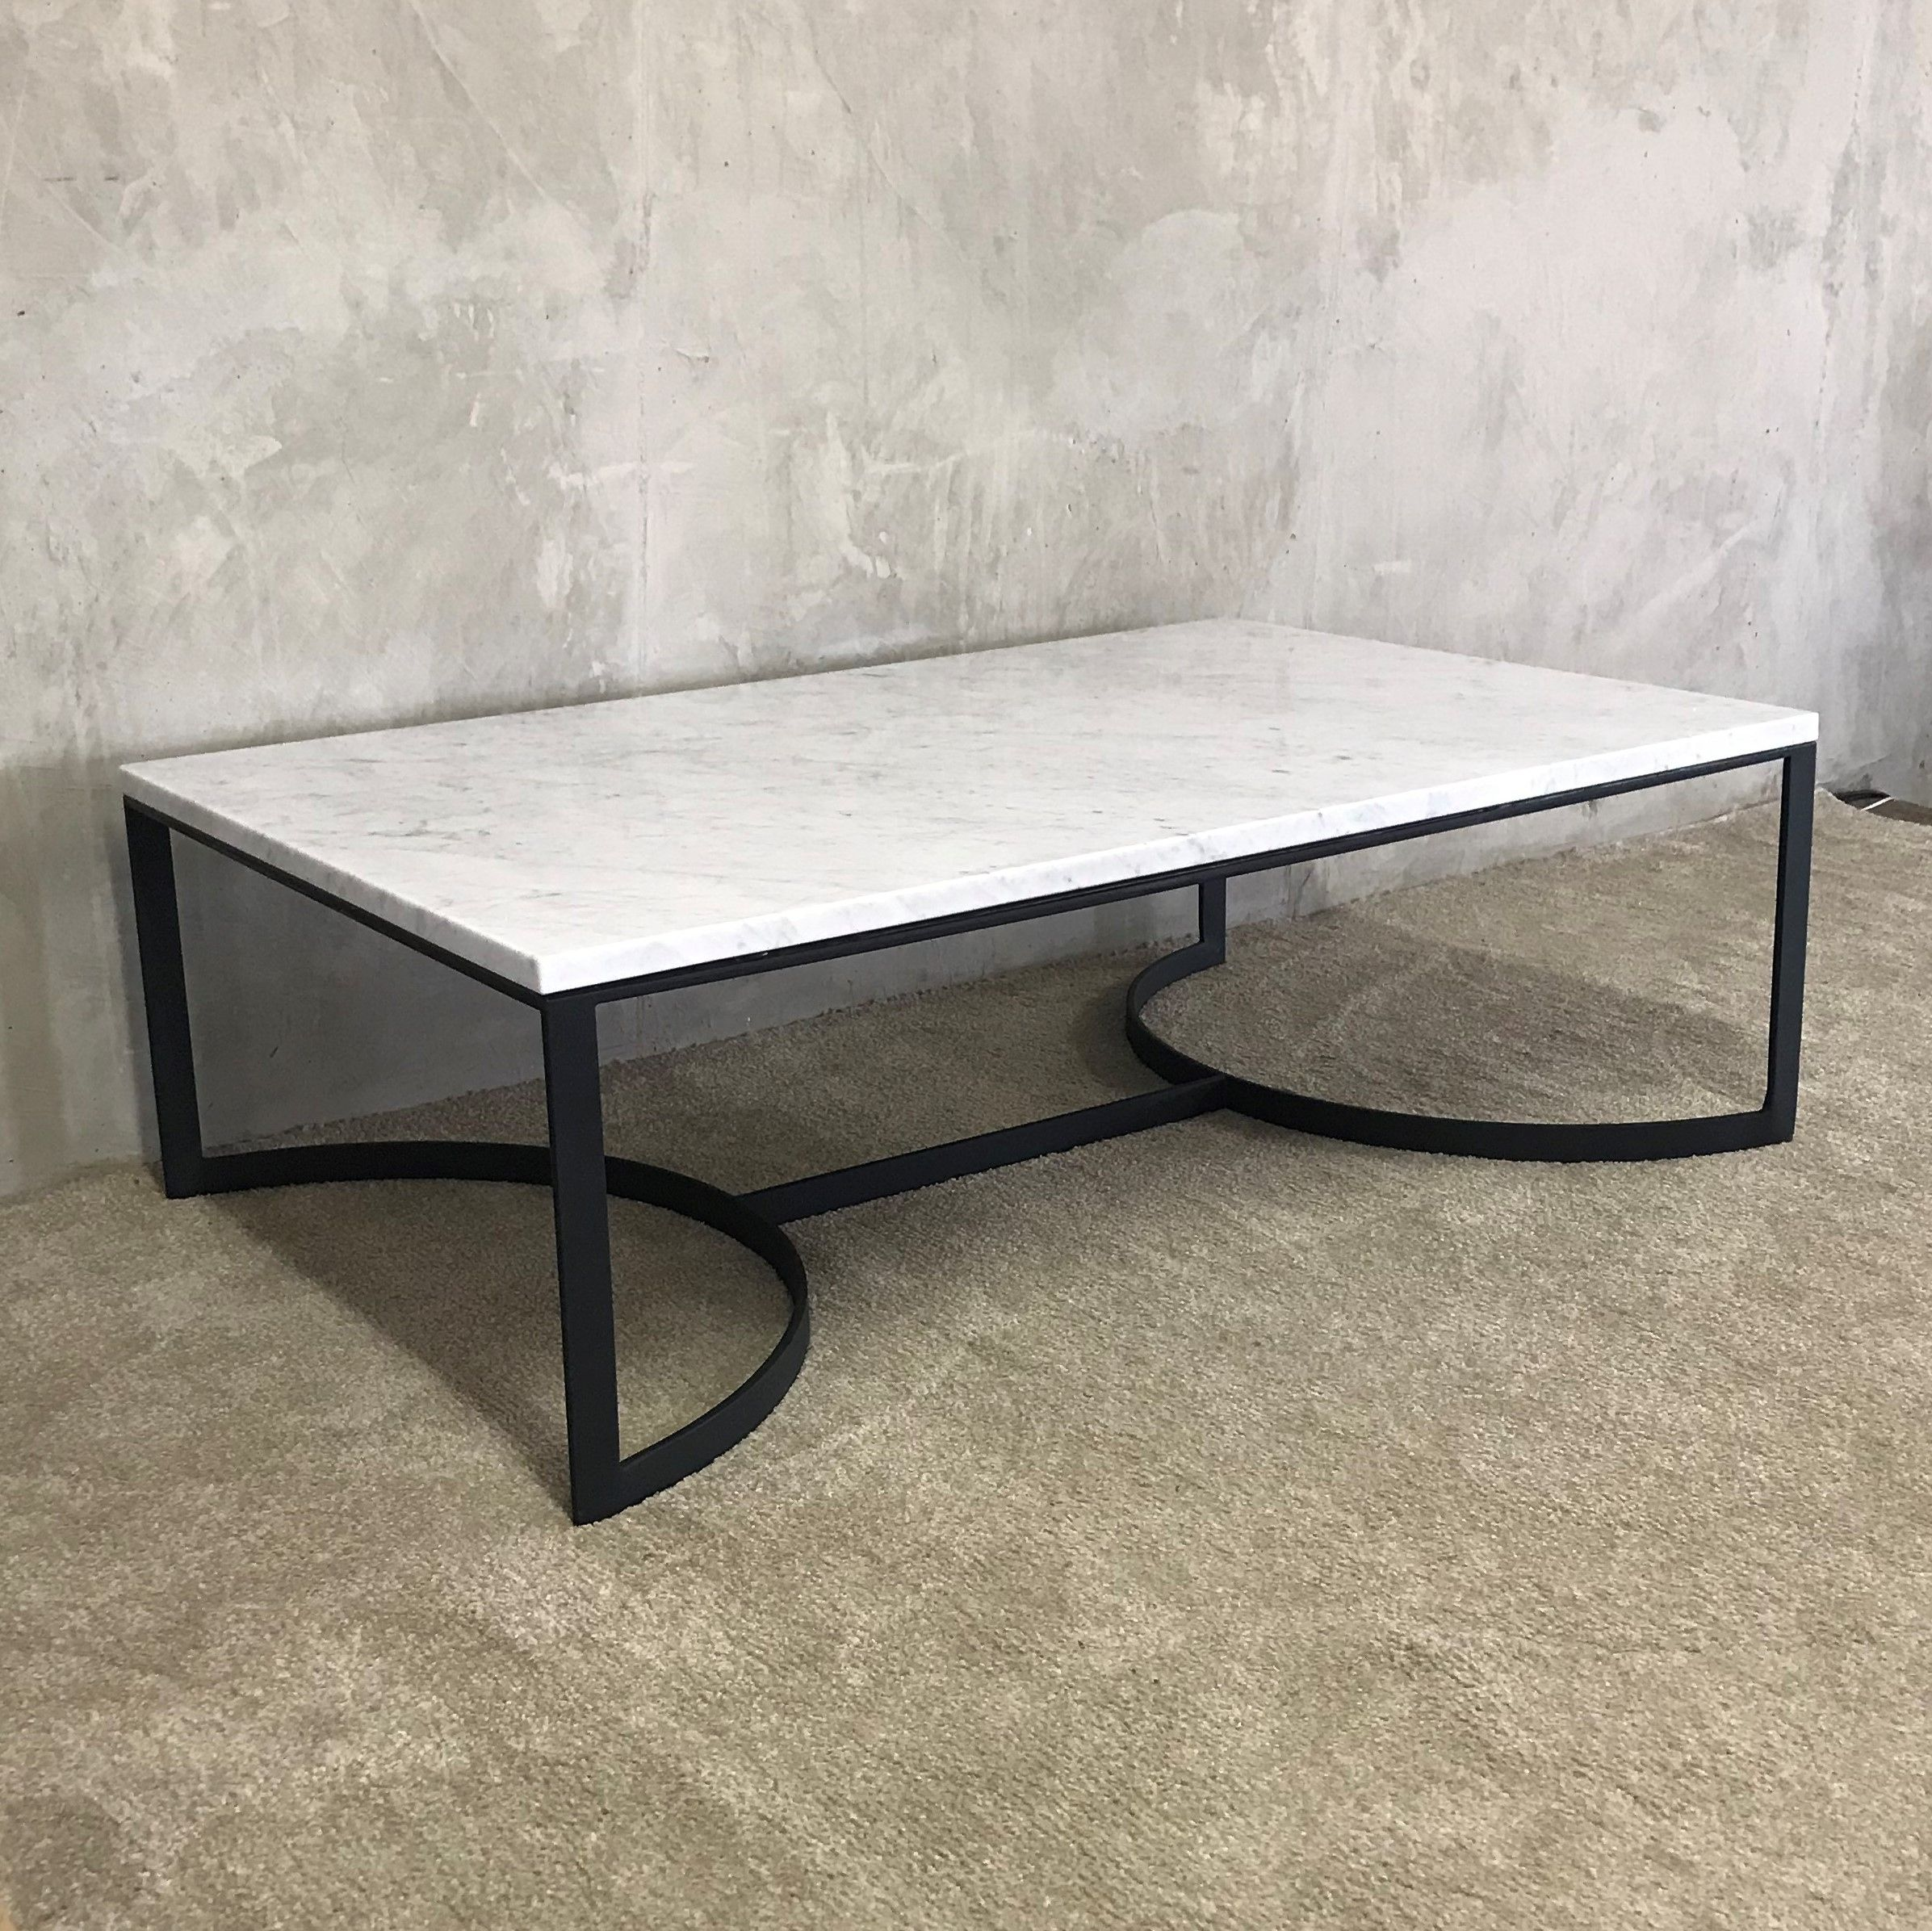 Marble Top Coffee Table Custom Made For Our Client Send Us Your Pics And We Will Quote For Your Design Http Coffee Table Furniture Furniture Design Wooden [ 2392 x 2393 Pixel ]